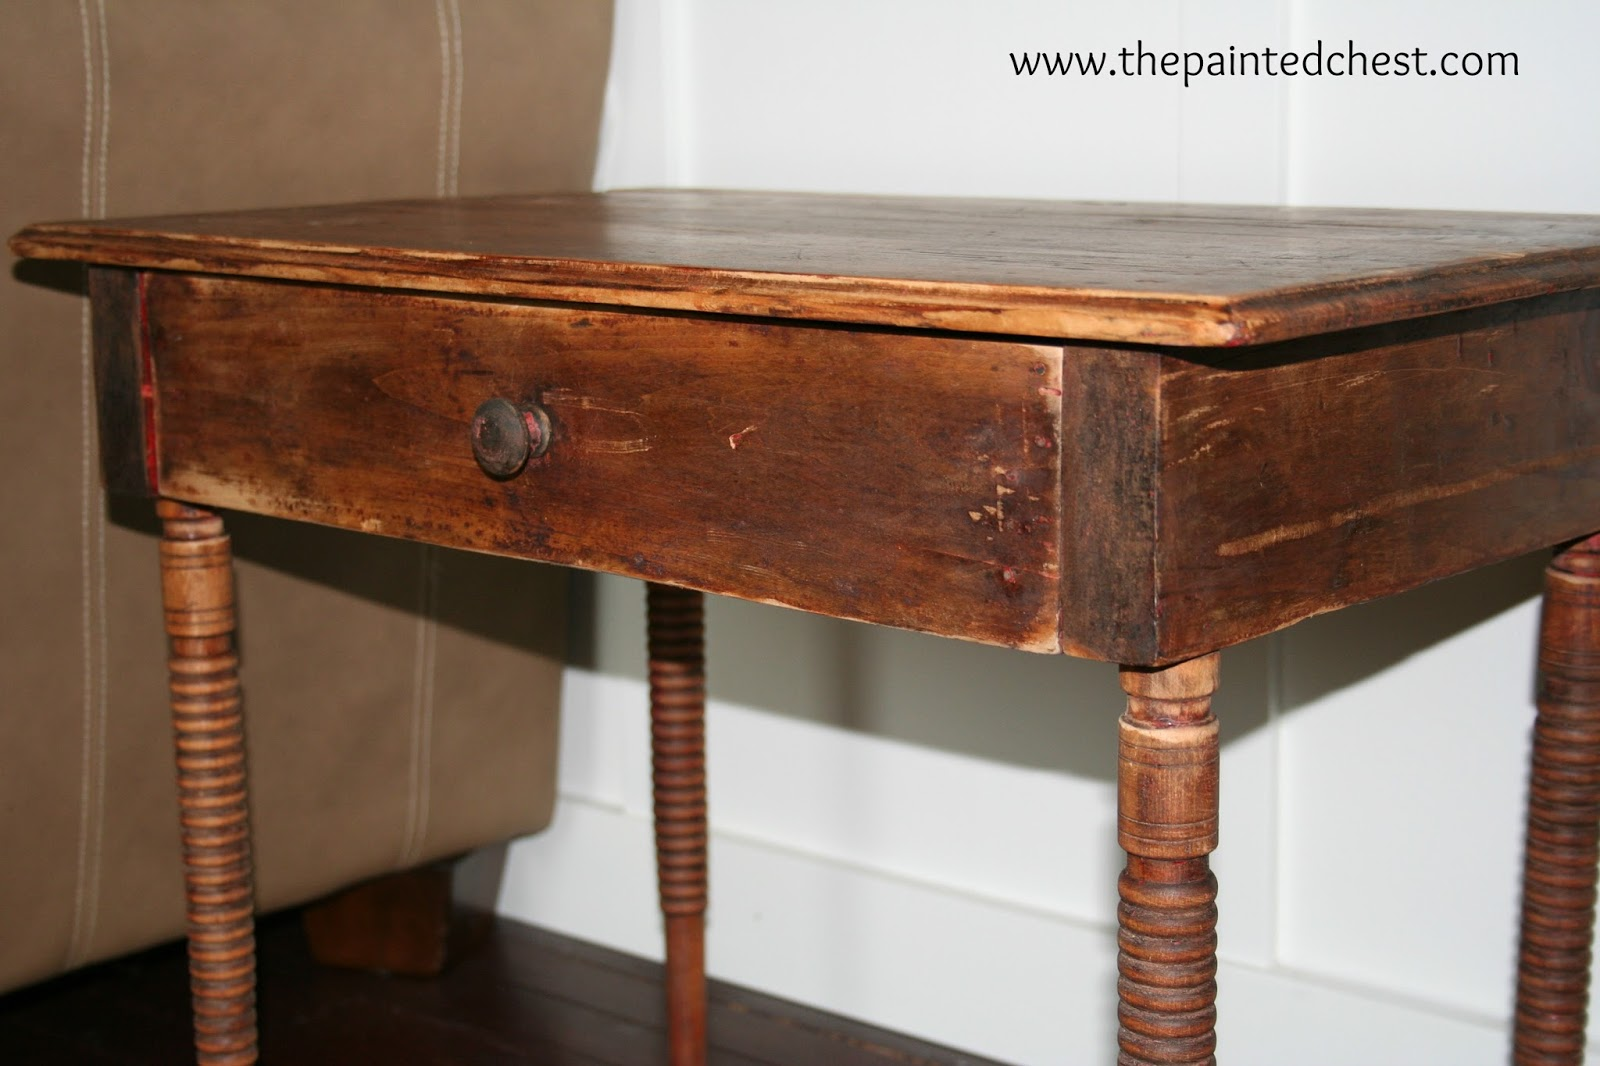 The Painted Chest: Antique End Table